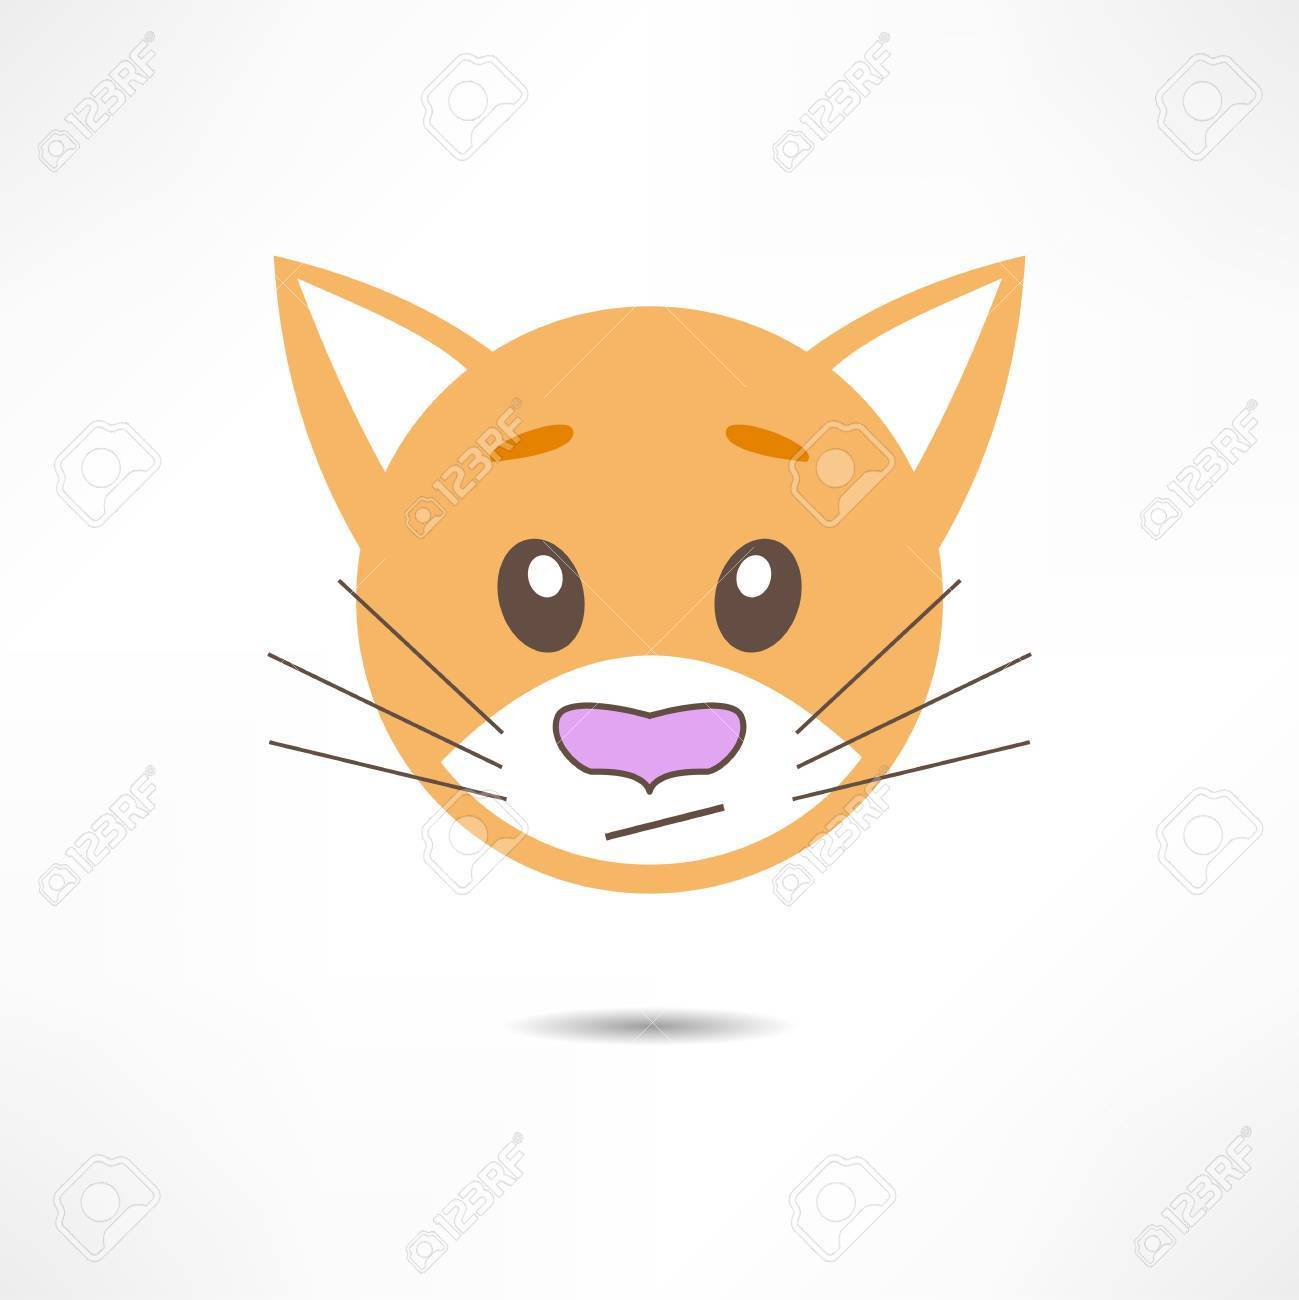 Thoughtful cat. Stock Vector - 17463679